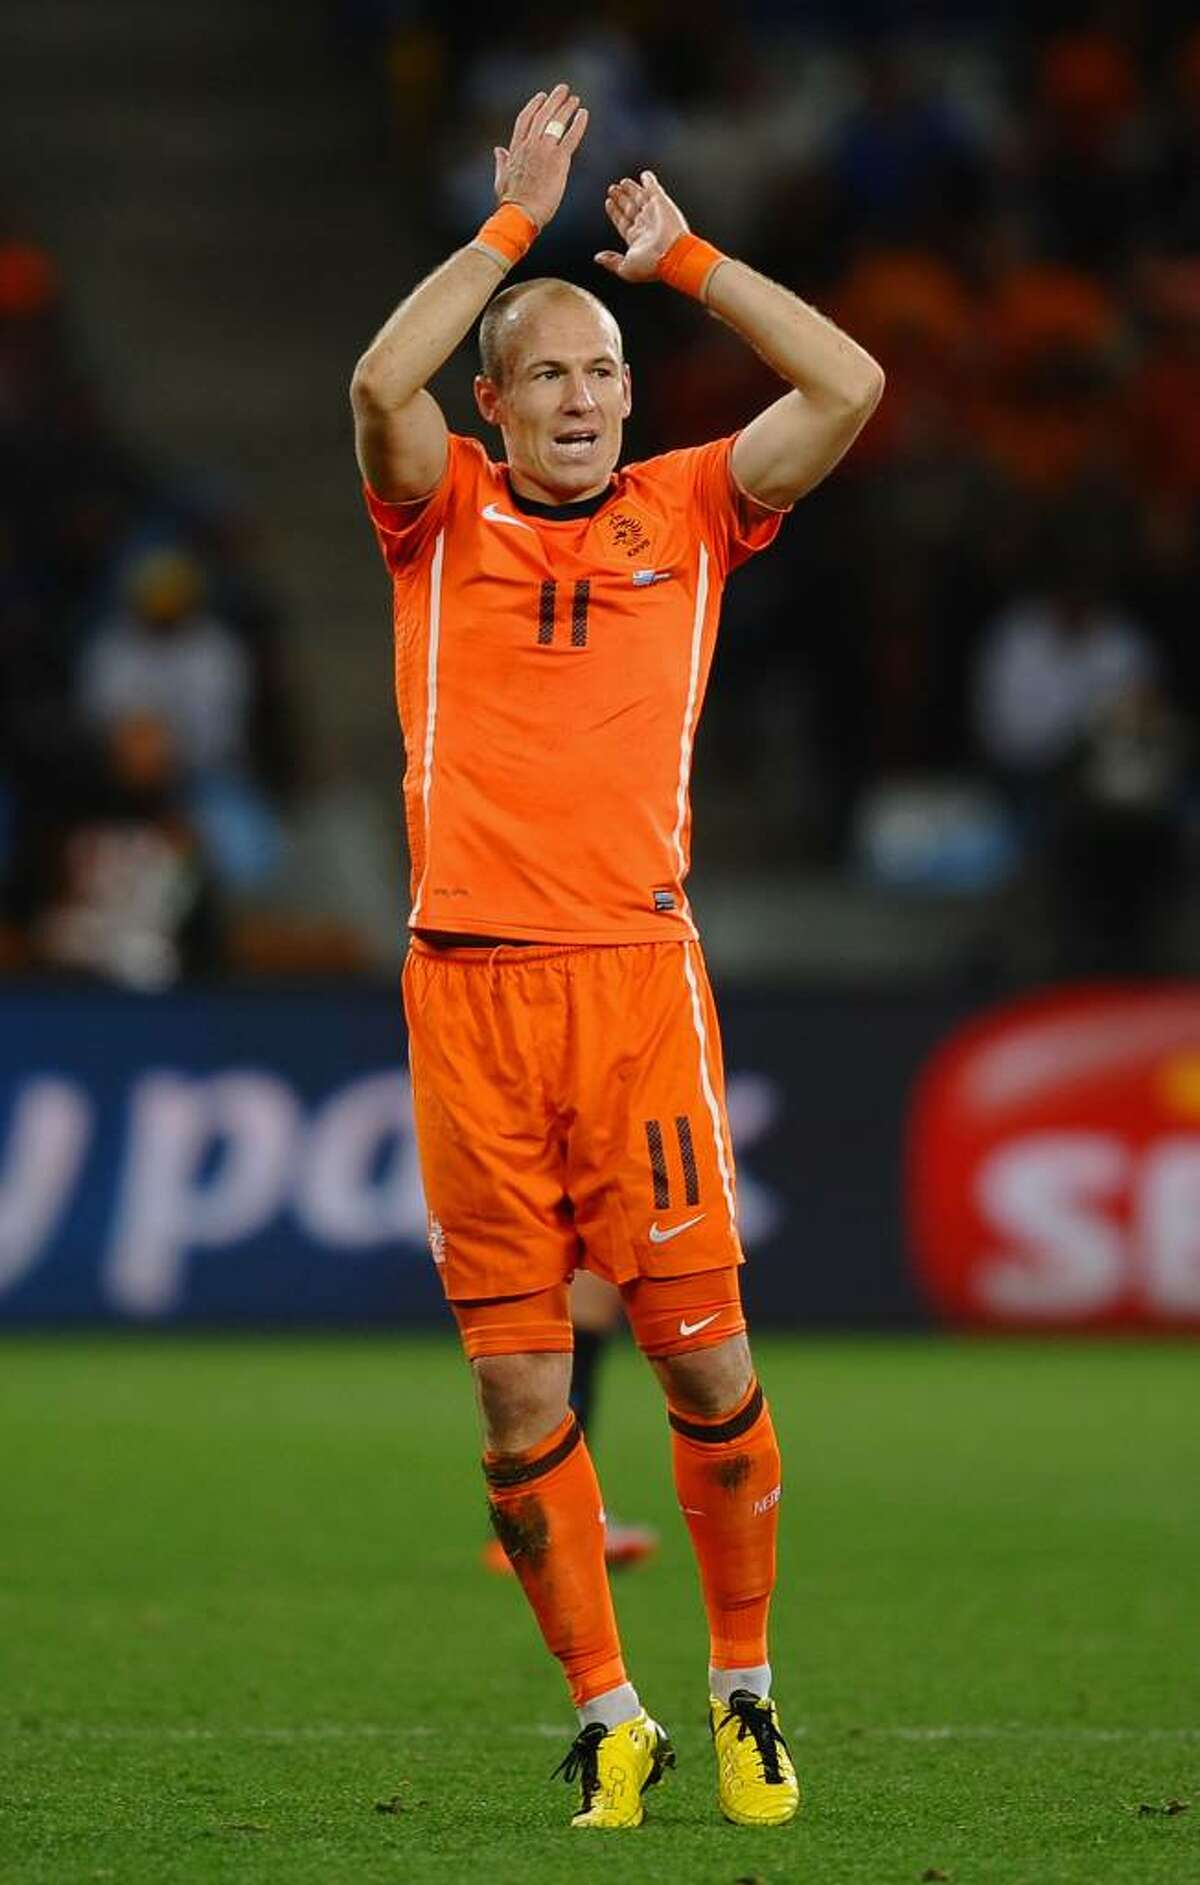 CAPE TOWN, SOUTH AFRICA - JULY 06: Arjen Robben of the Netherlands celebrates during the 2010 FIFA World Cup South Africa Semi Final match between Uruguay and the Netherlands at Green Point Stadium on July 6, 2010 in Cape Town, South Africa. (Photo by Laurence Griffiths/Getty Images) *** Local Caption *** Arjen Robben